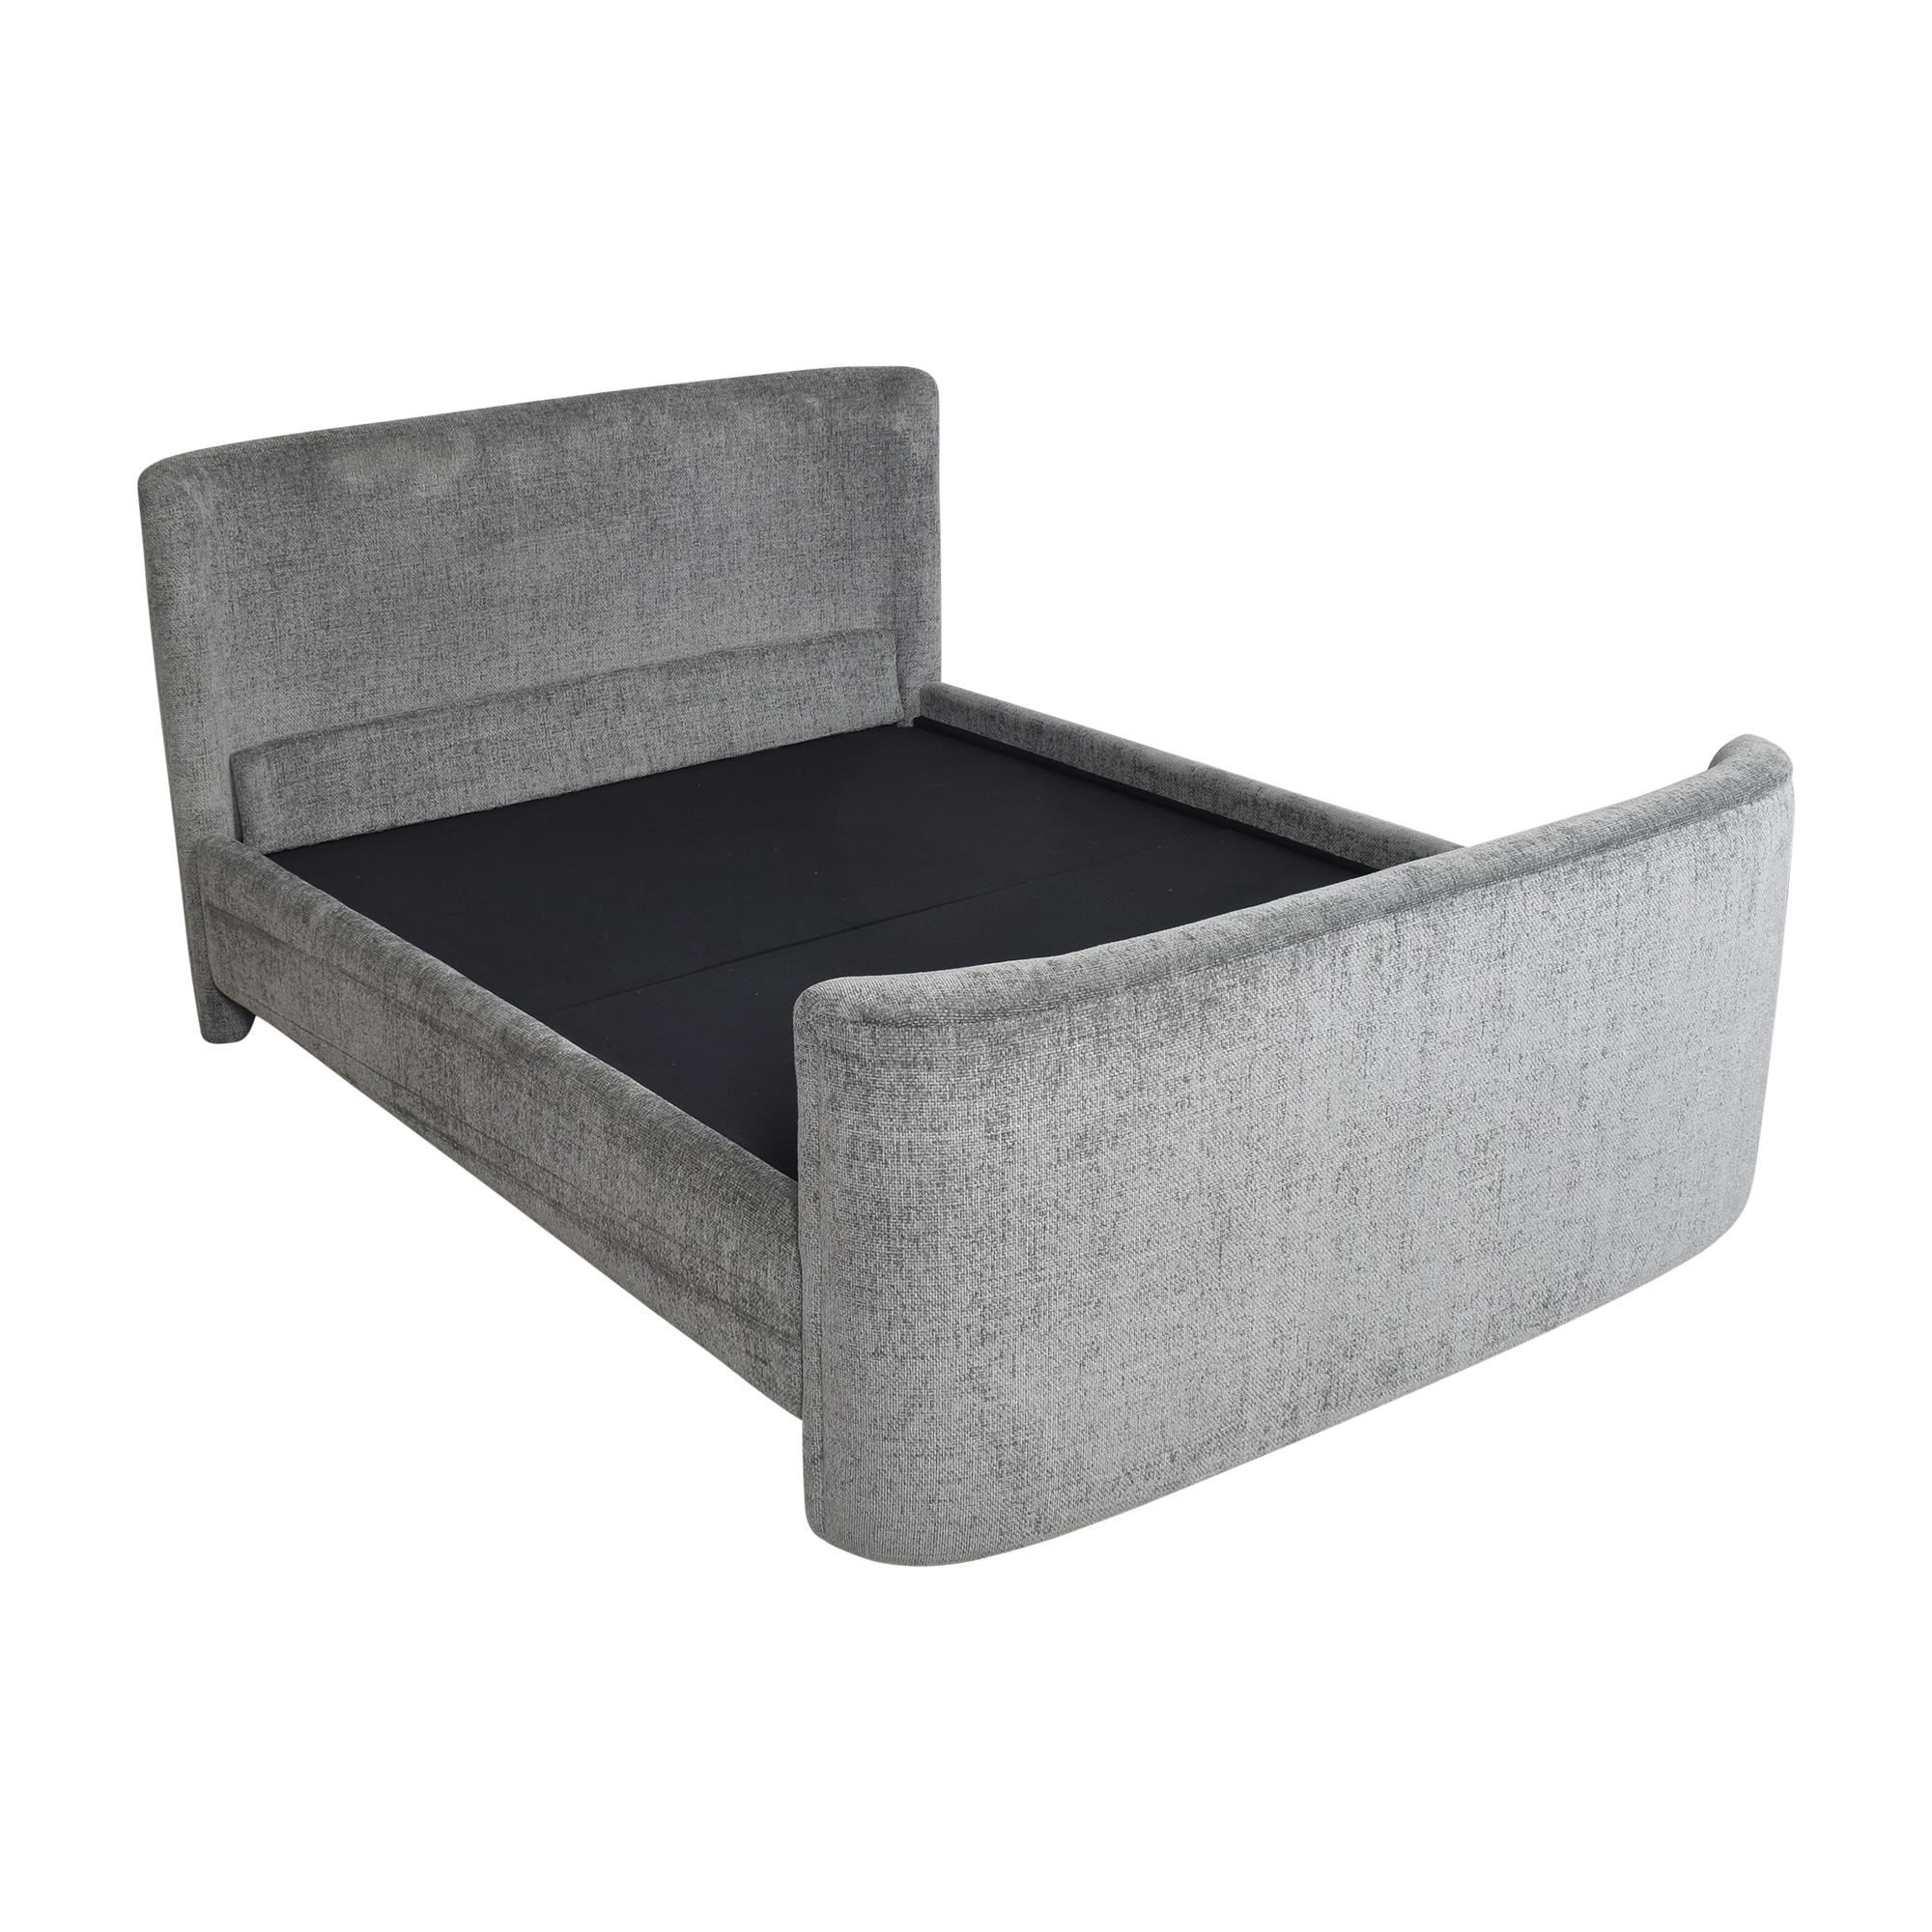 Upholstered Queen Bed coupon